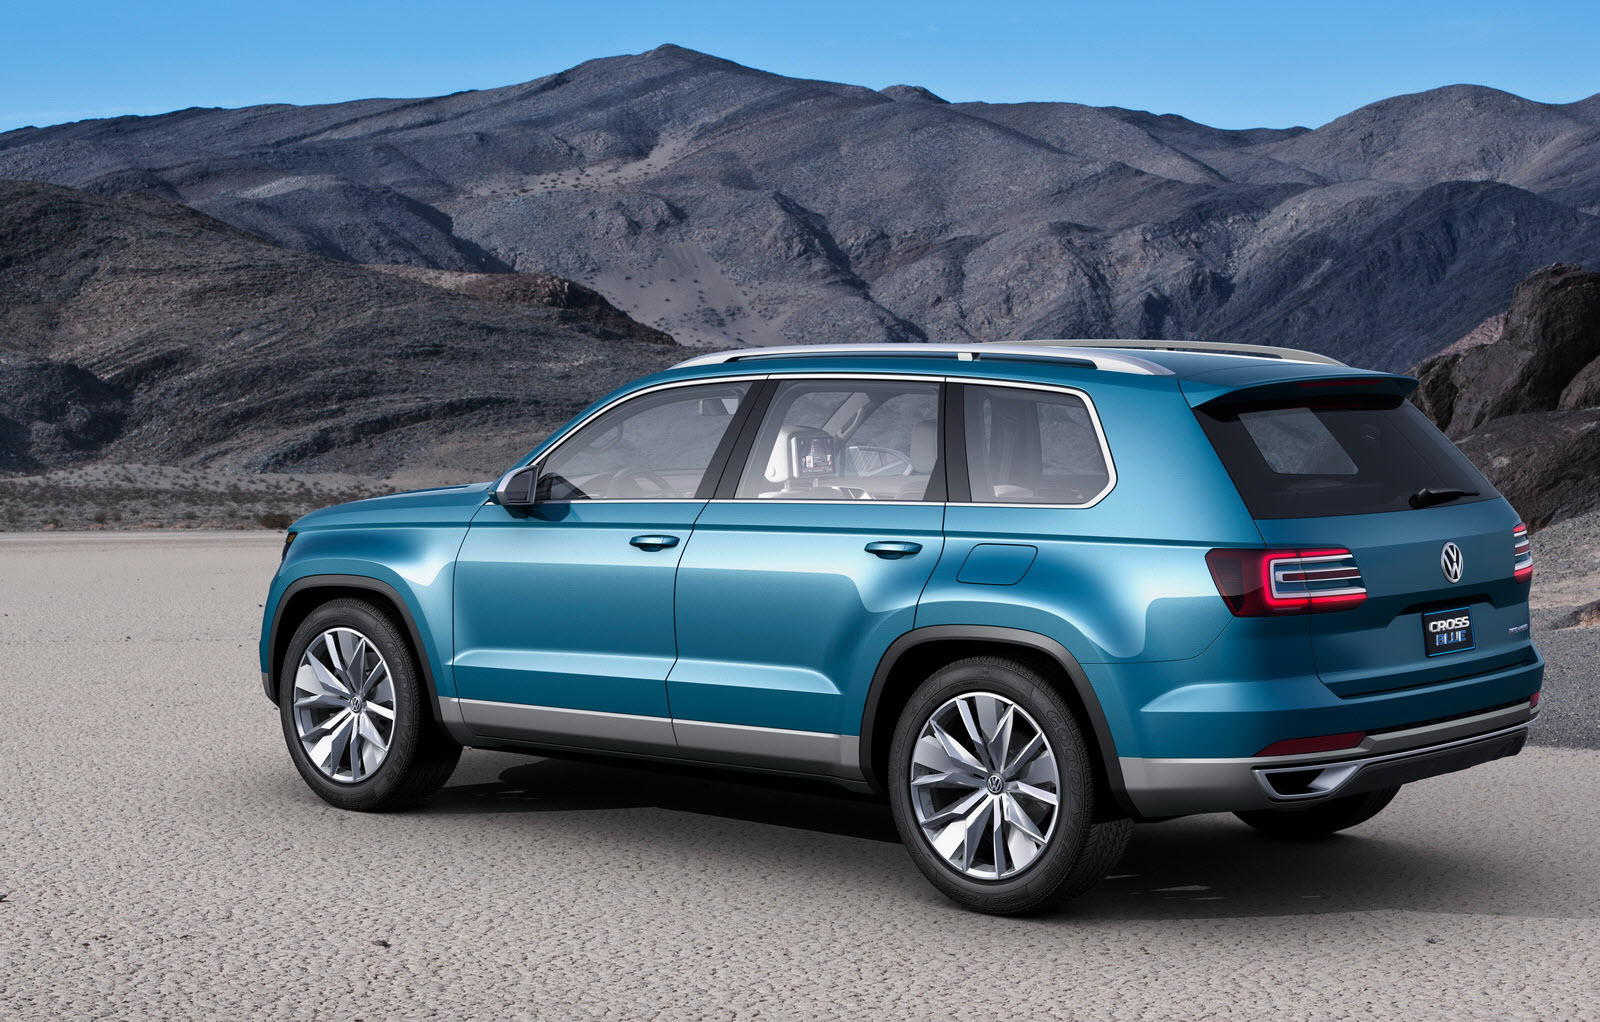 new volkswagen suv concept makes global debut at detroit show auto car best car news and reviews. Black Bedroom Furniture Sets. Home Design Ideas